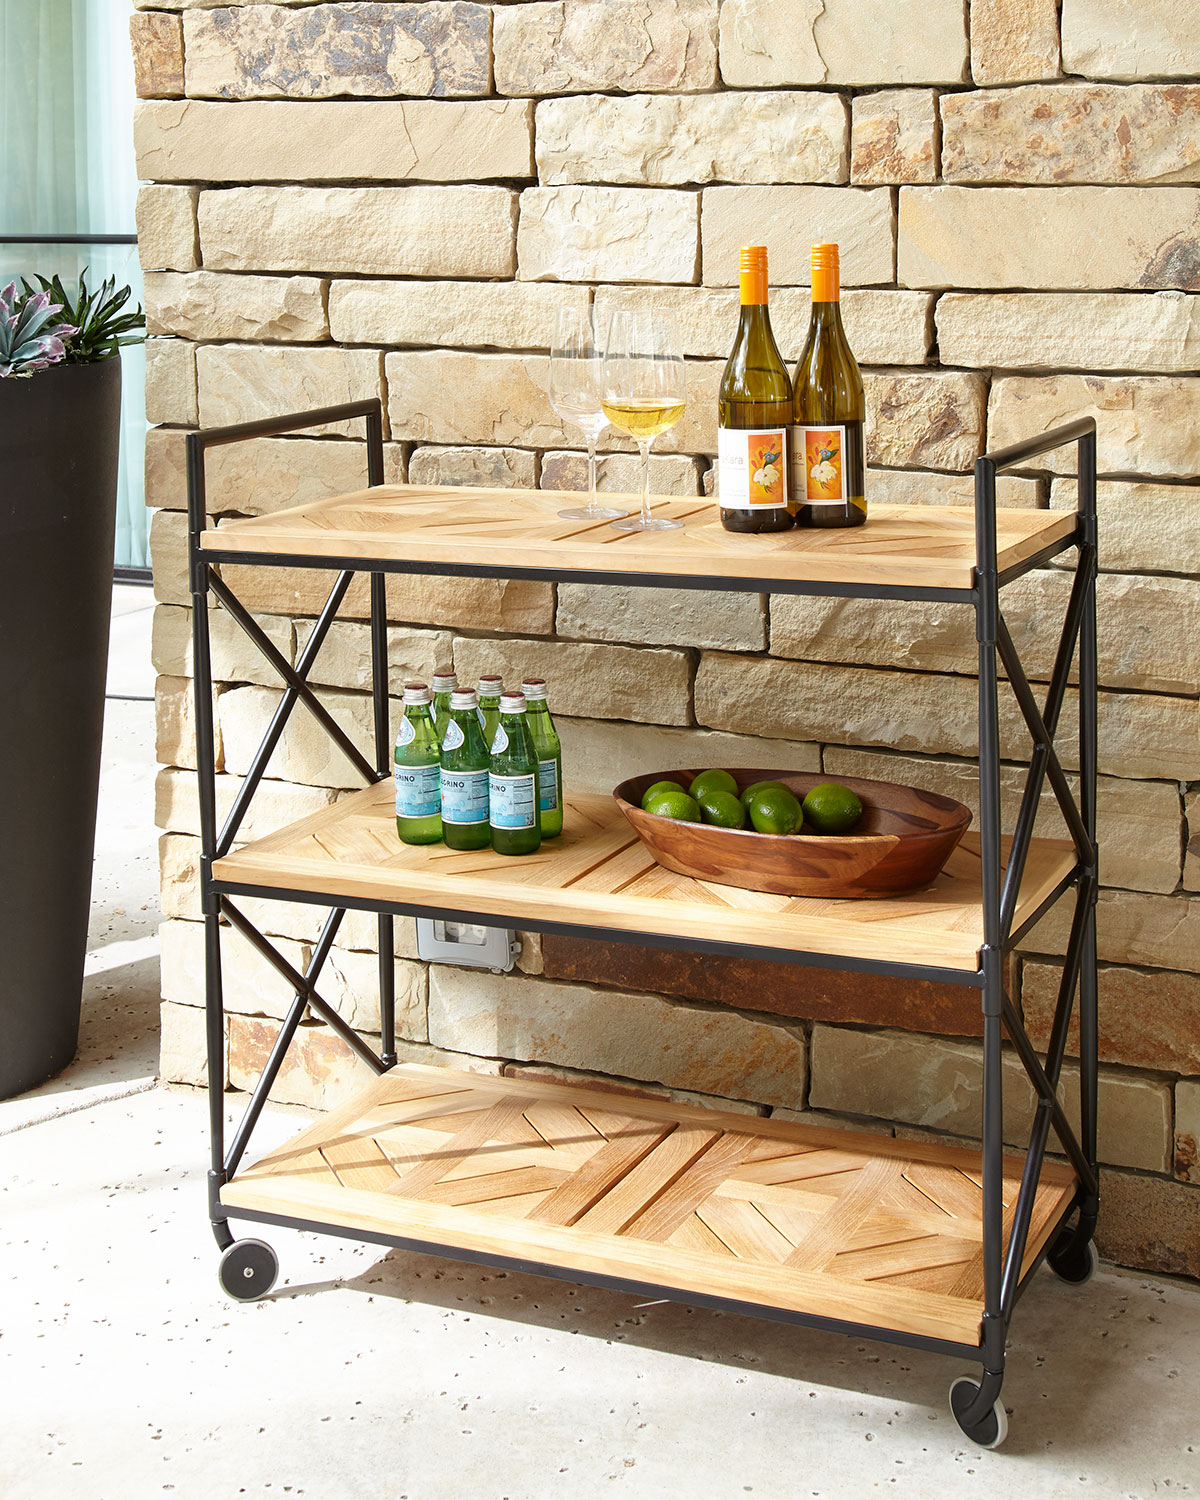 Neiman_marcus Avery Neoclassical Outdoor Bar Cart